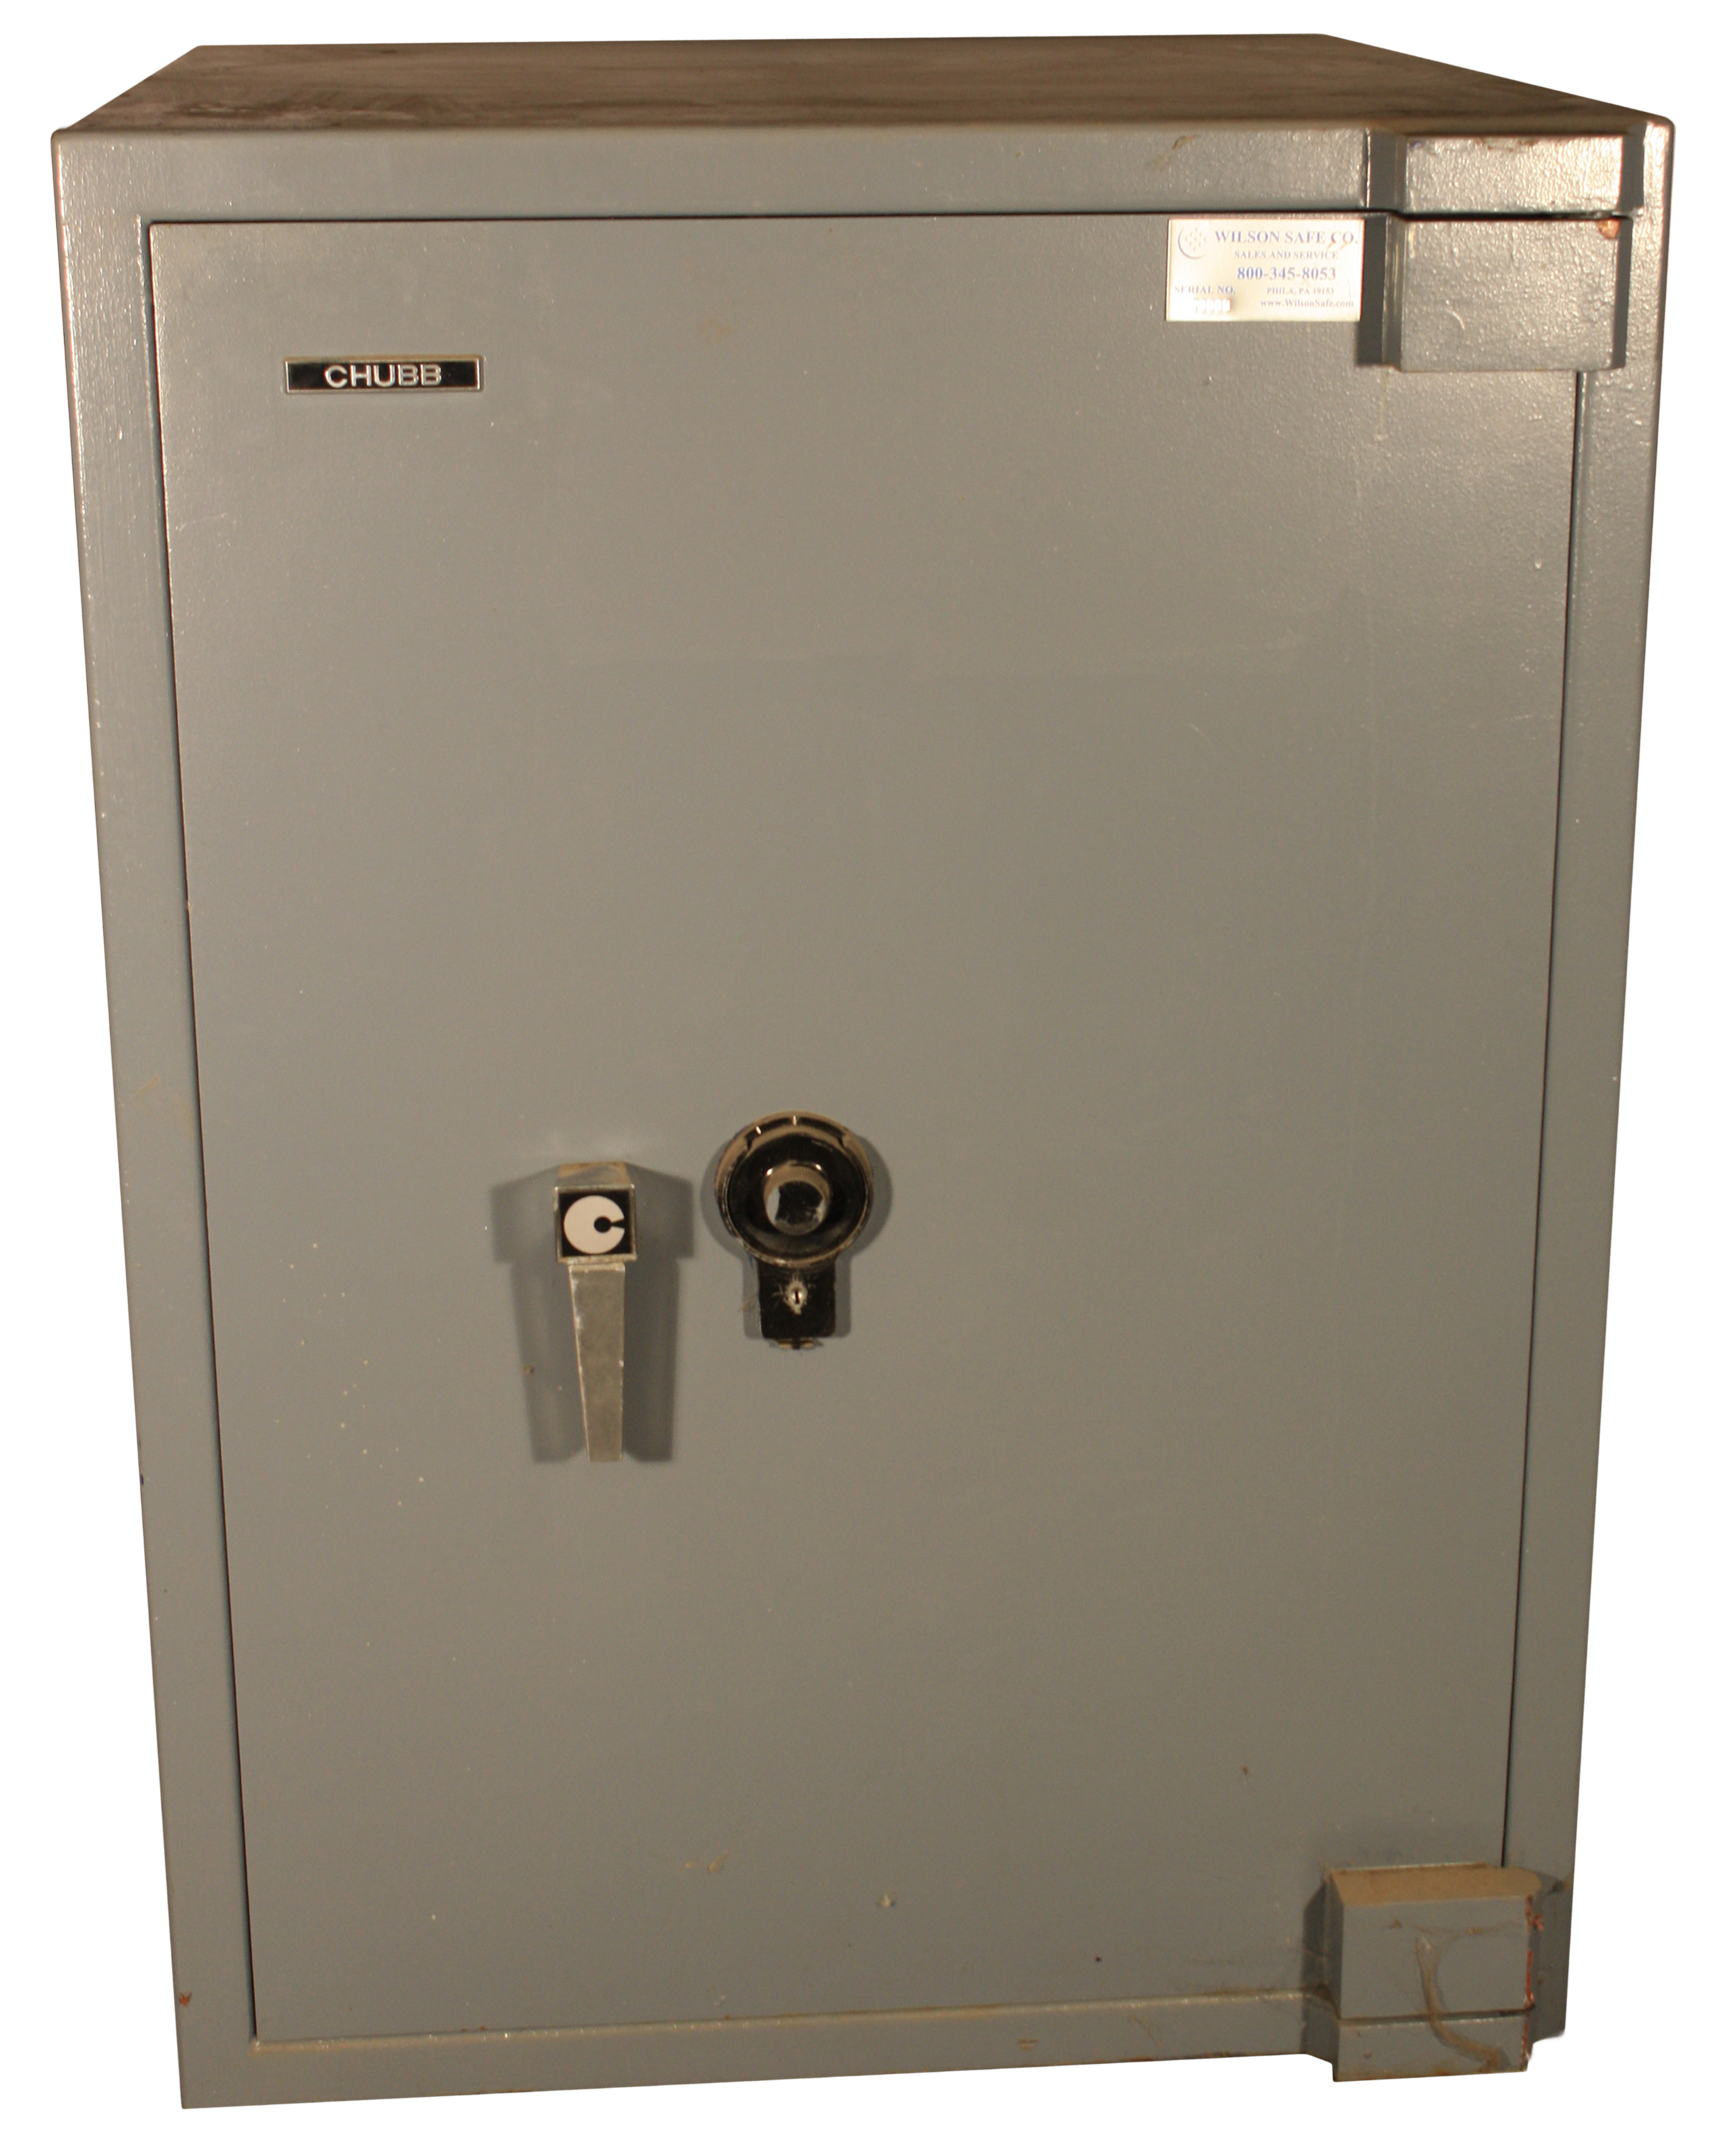 Chubb TRTL-30 used safe